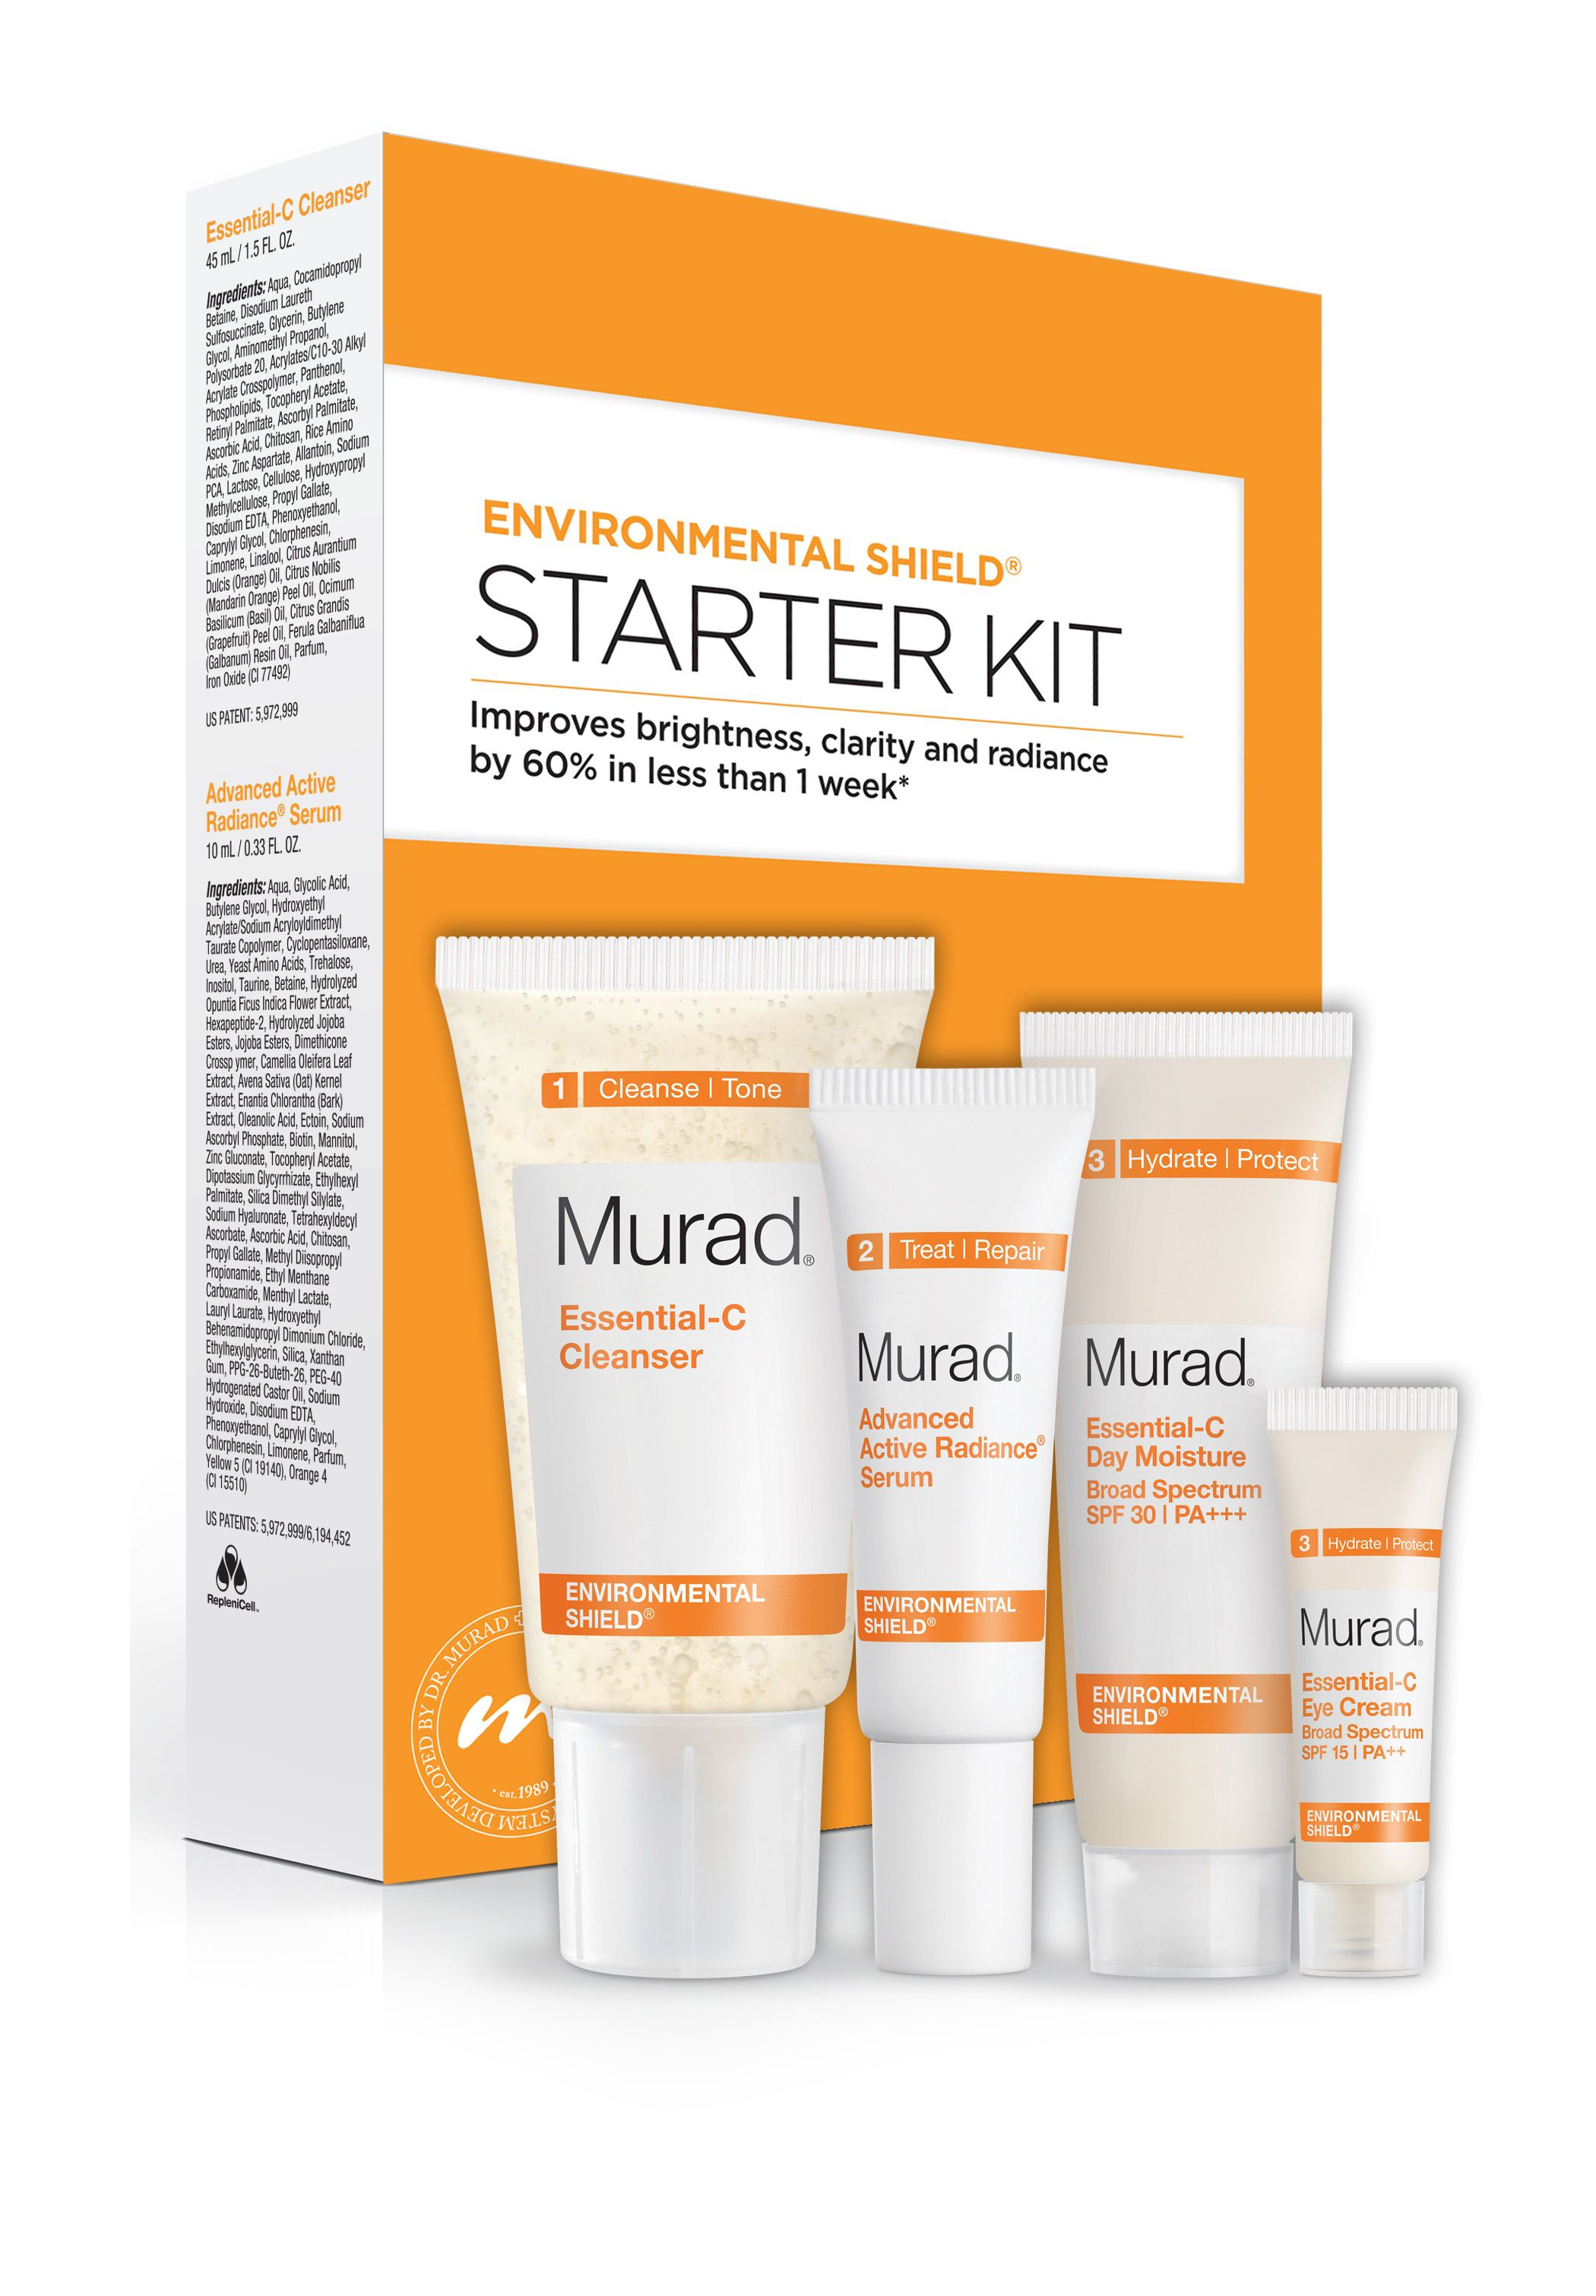 Environmental Shield - Starter Kit